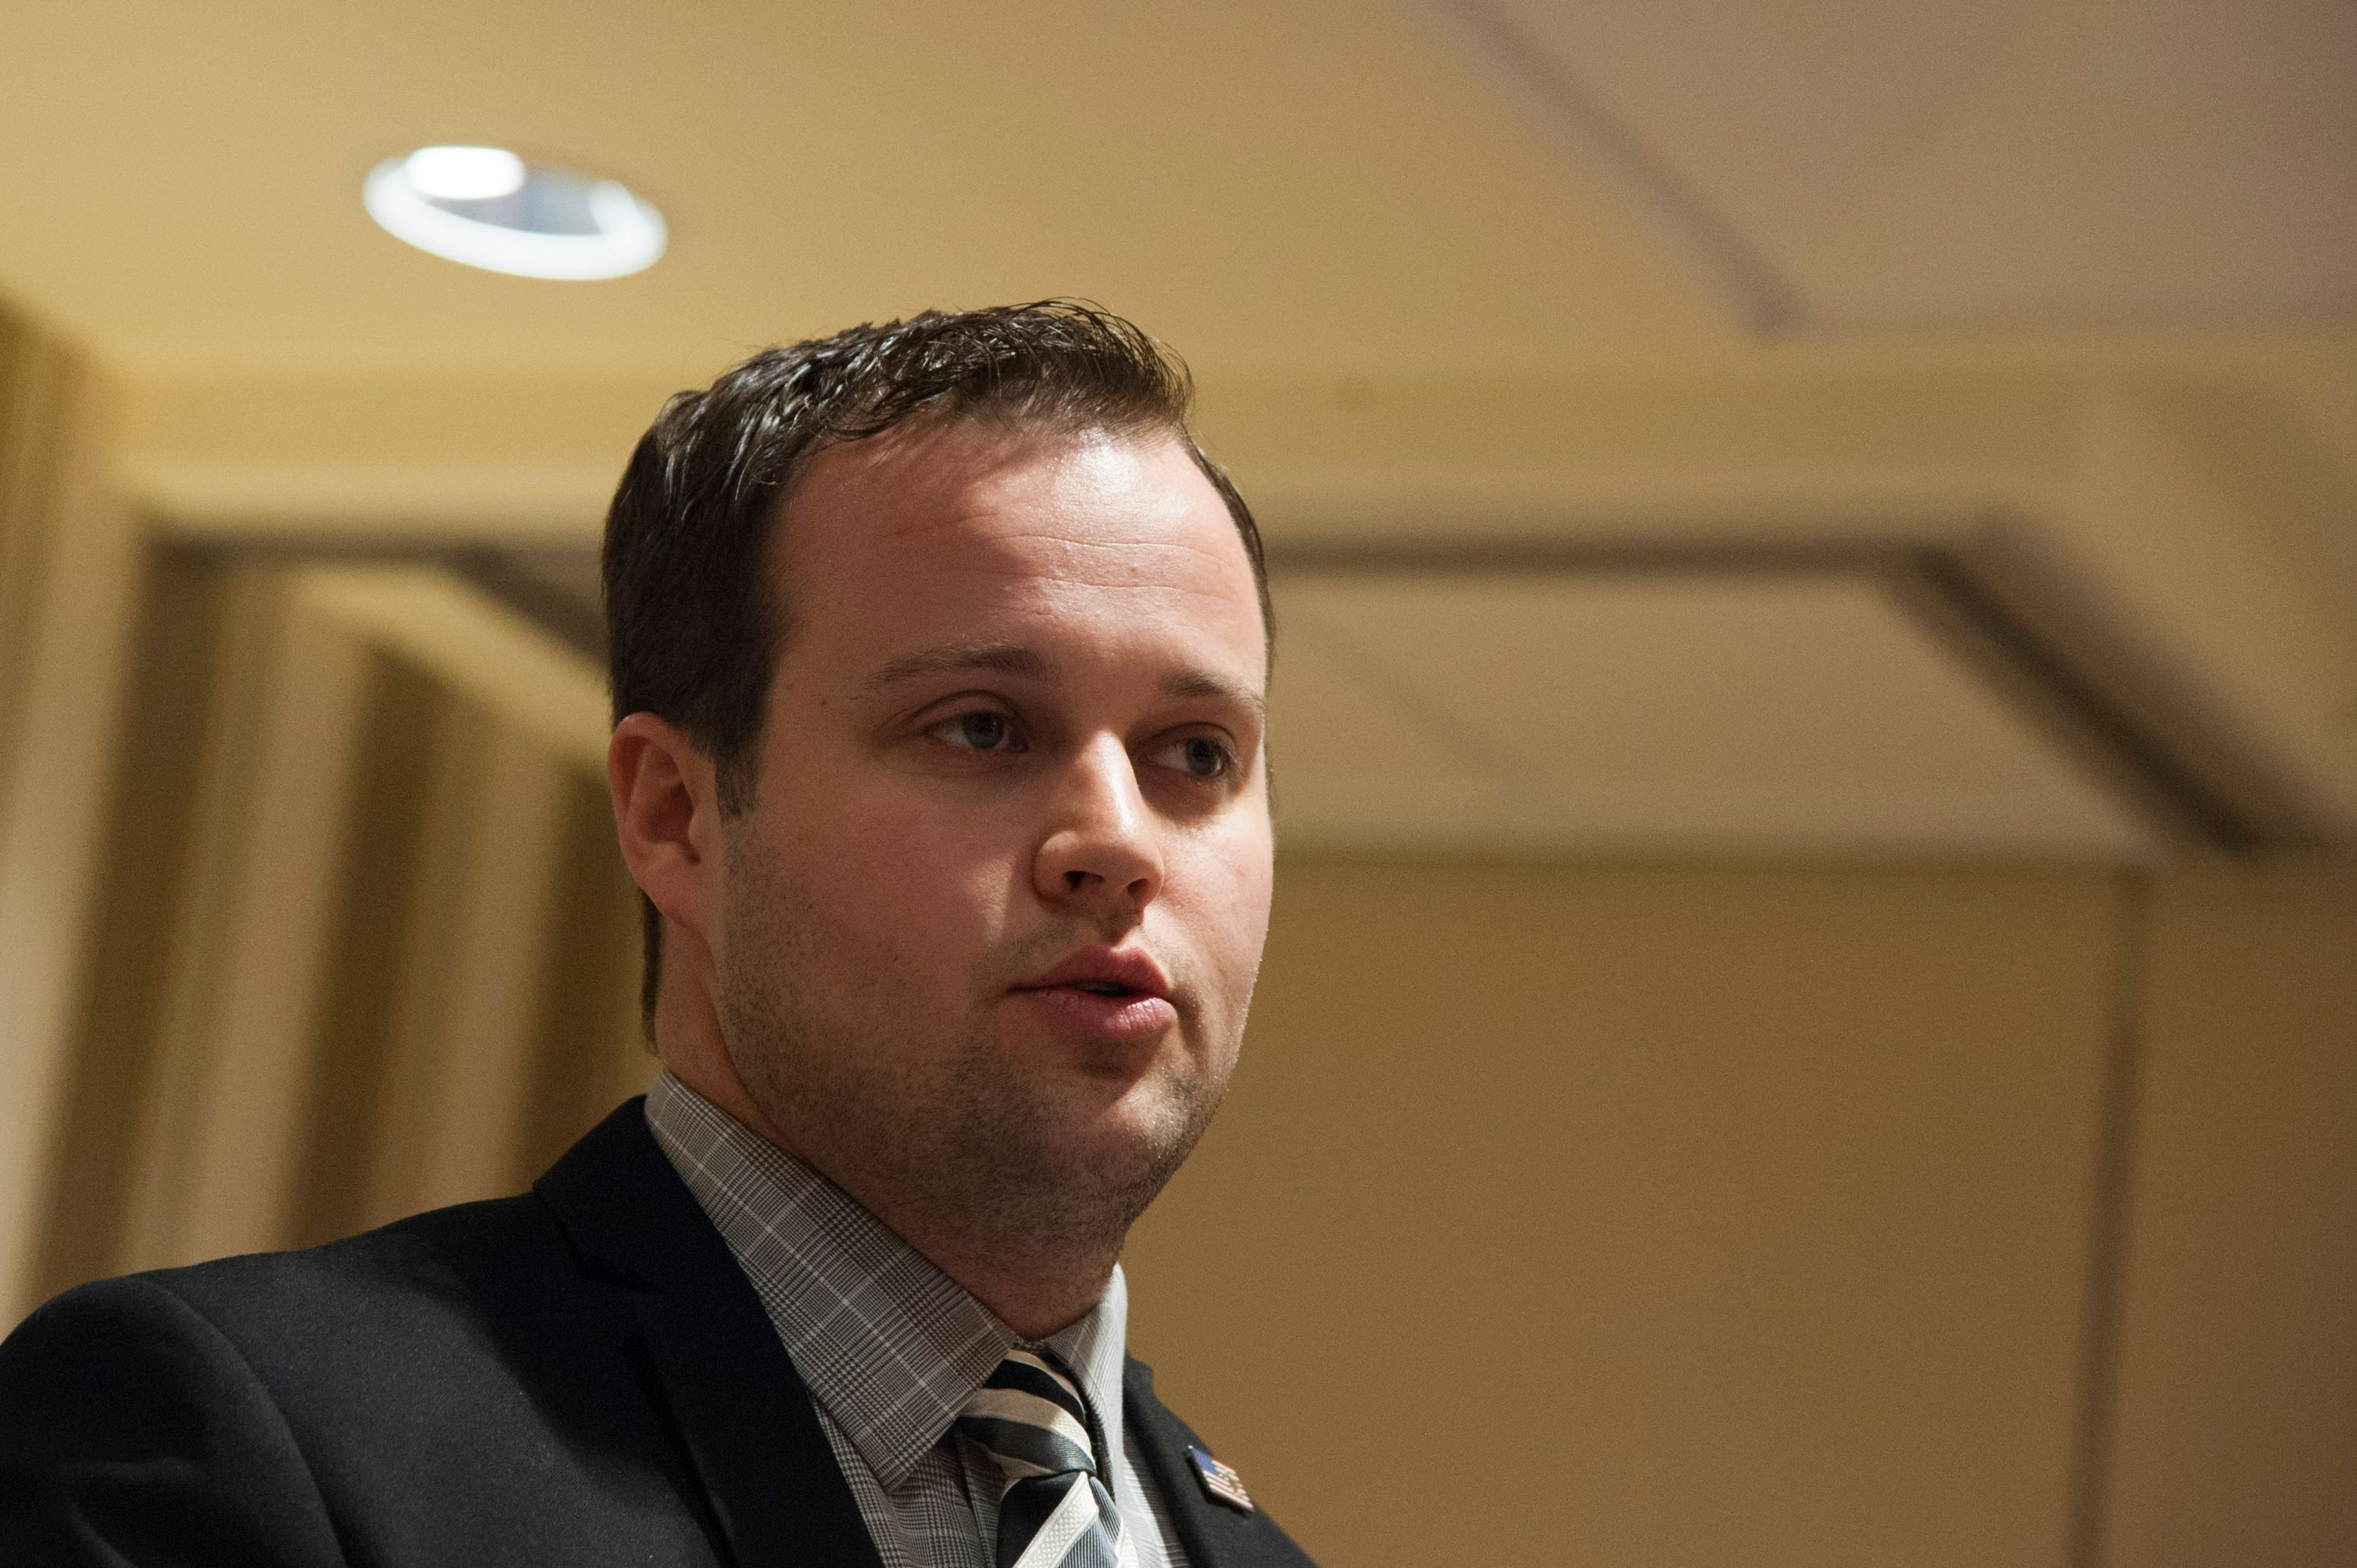 Josh Duggar speaking during the 42nd annual Conservative Political Action Conference at the Gaylord National Resort Hotel and Convention Center in National Harbor, Maryland | Photo: Kris Connor/Getty Images